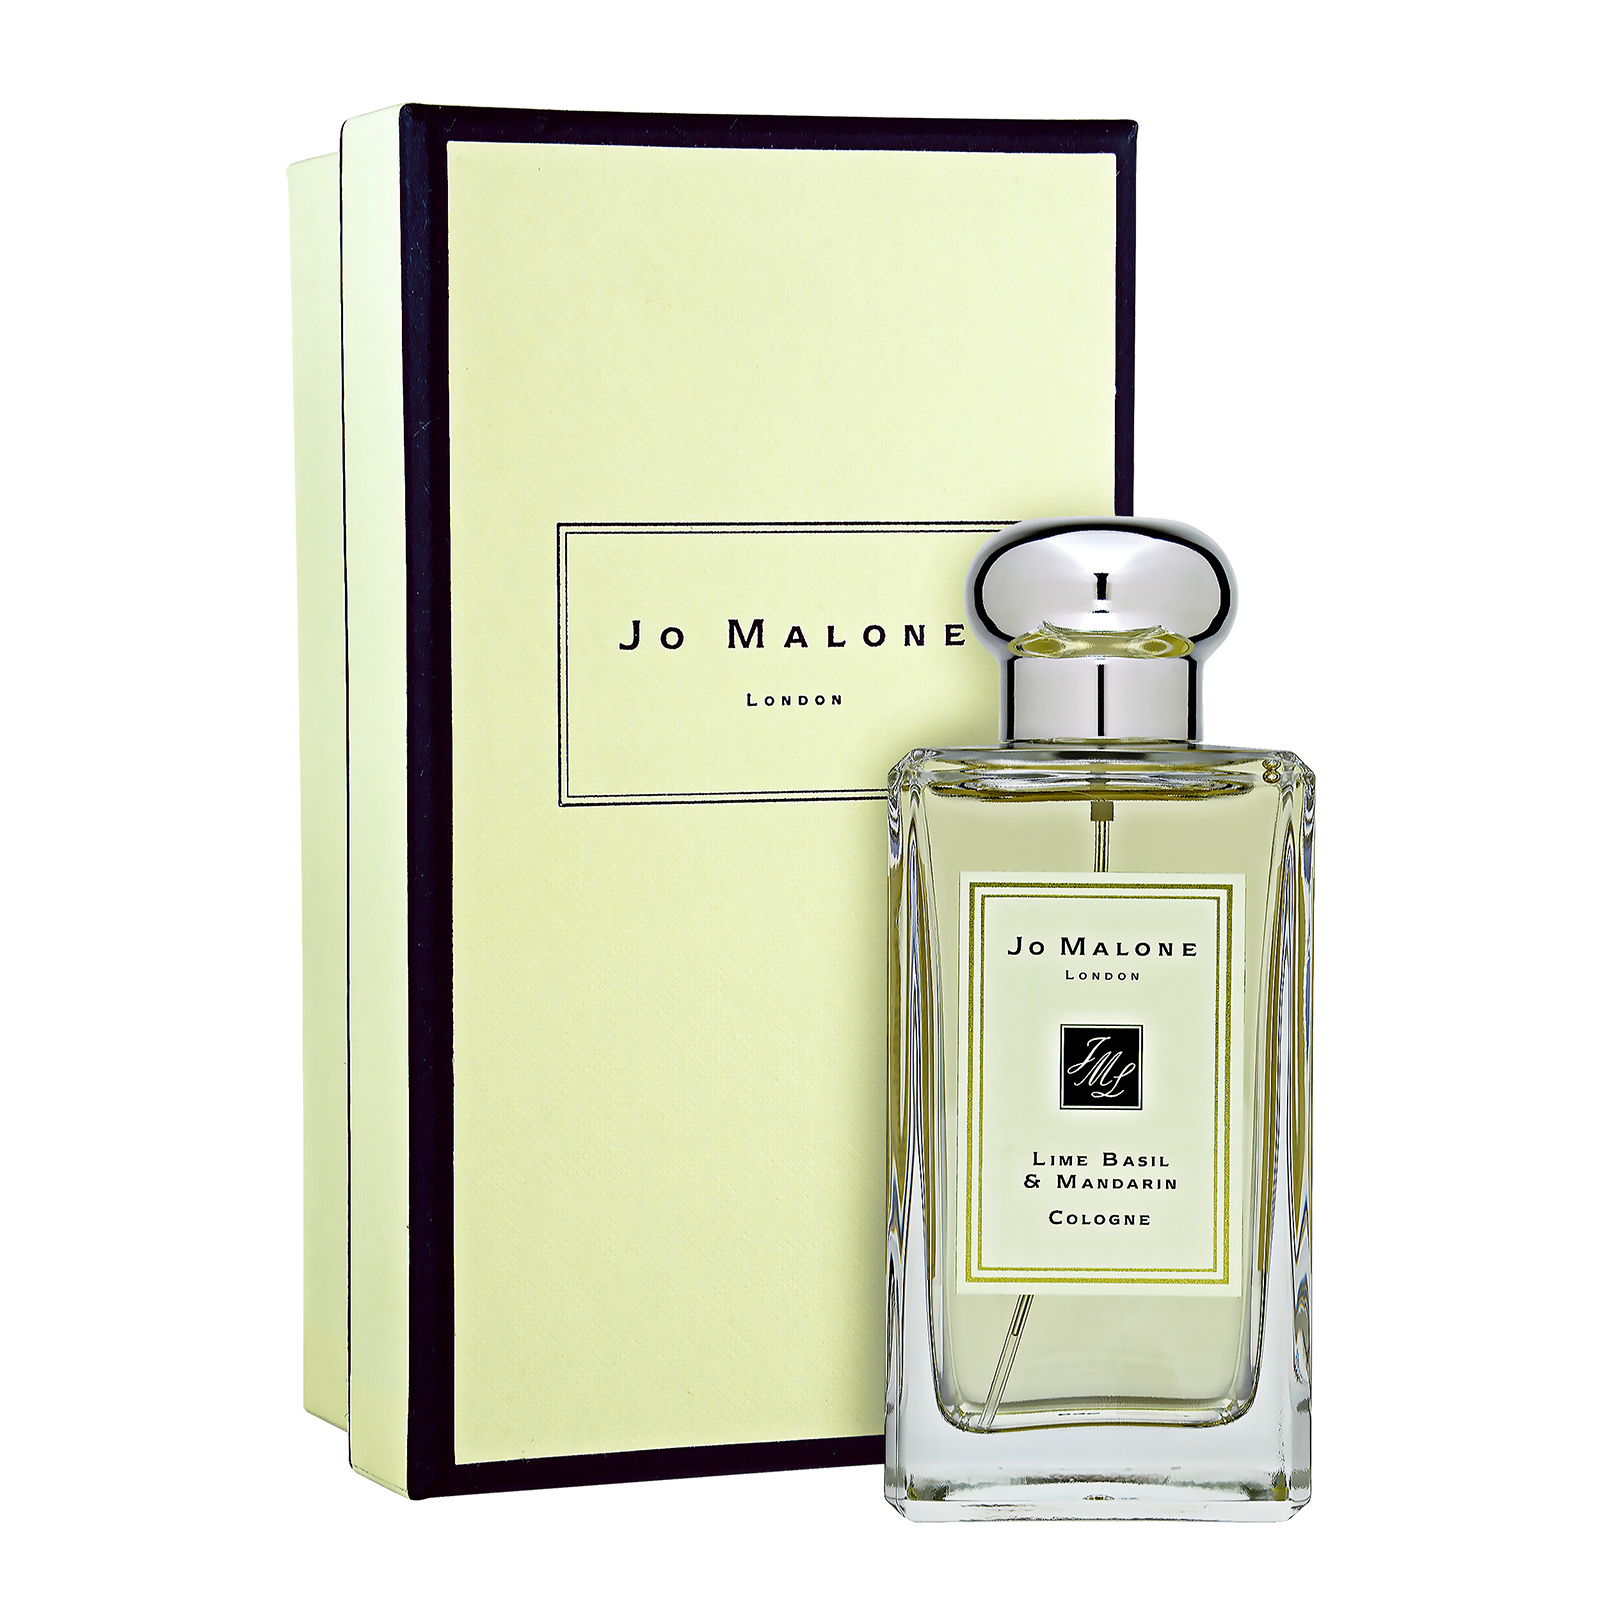 Jo Malone Lime Basil Mandarin Cologne 34oz100ml Fragrance Women